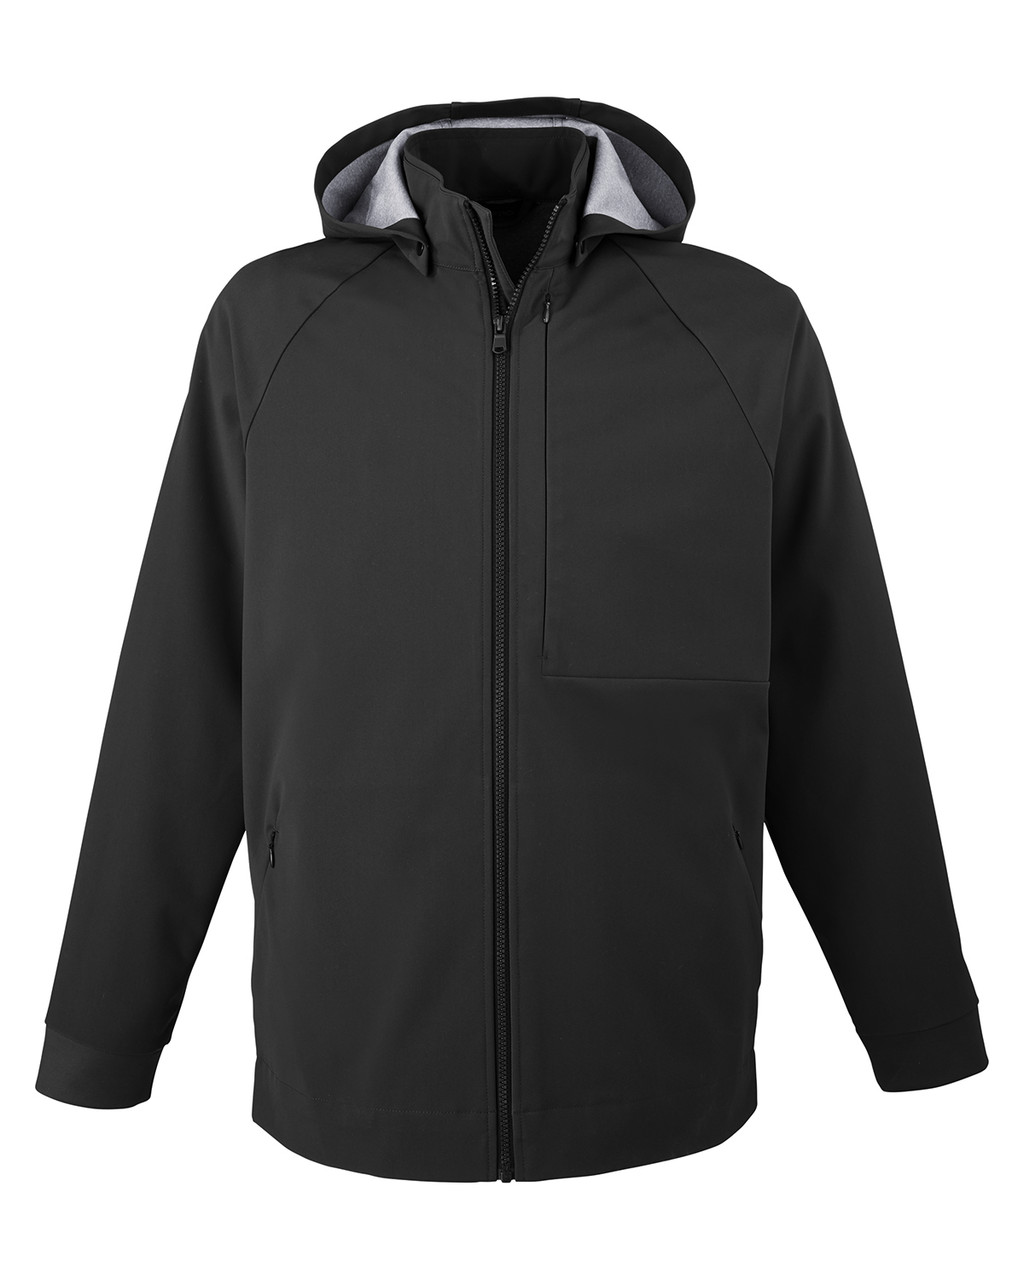 Black - NE718 North End Men's City Hybrid Shell Jacket| BlankClothing.ca